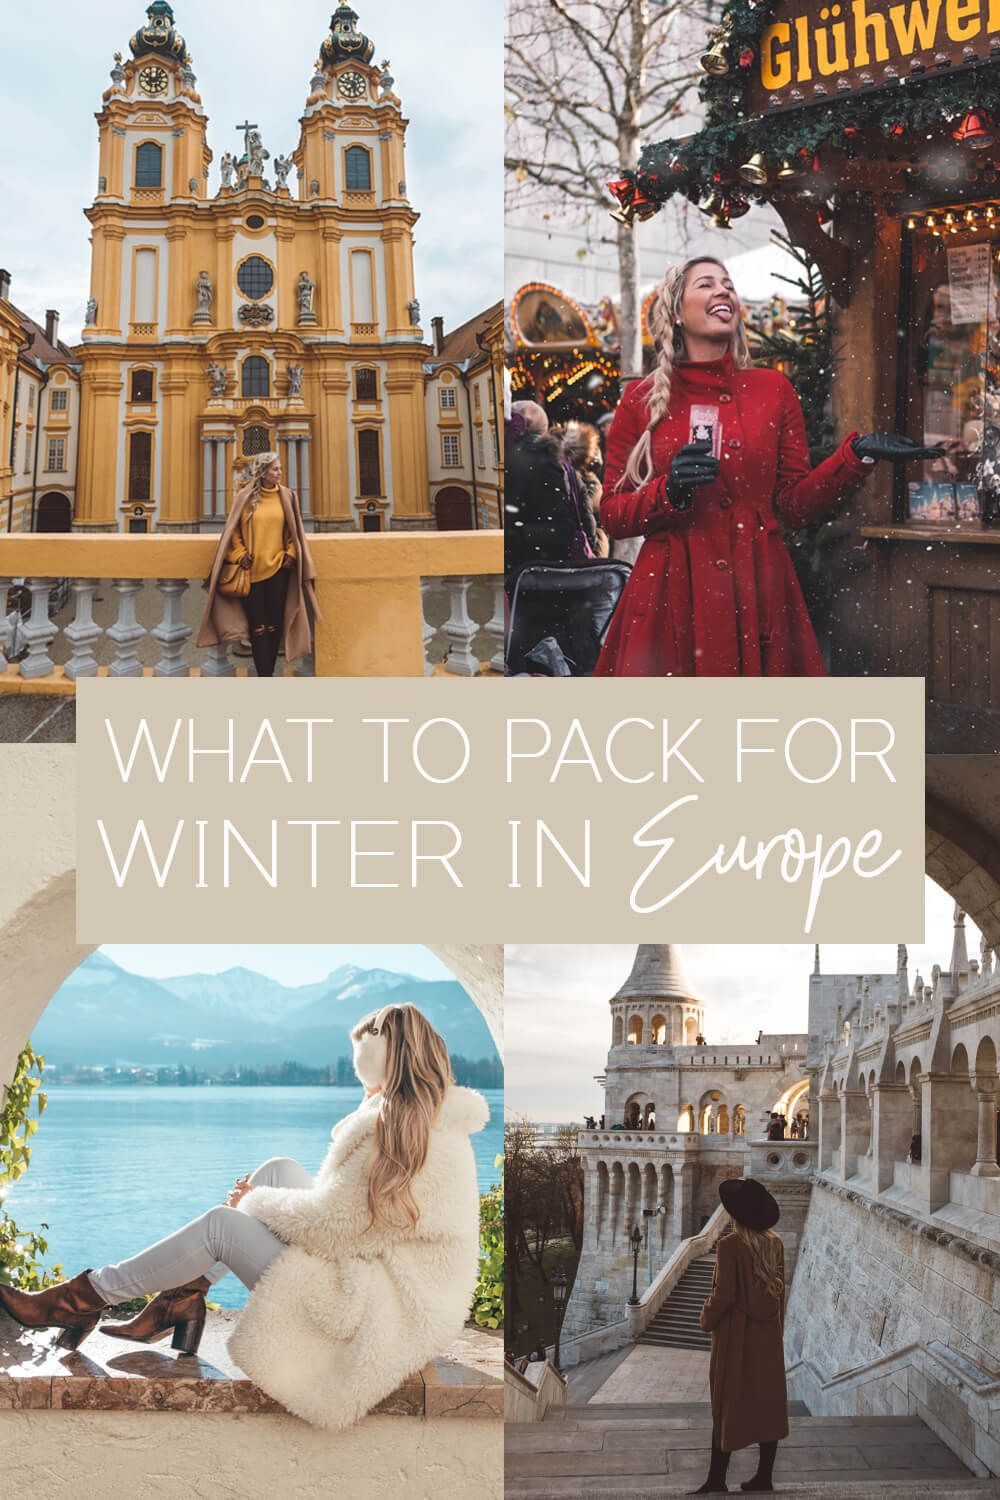 bf9e4b74c1b Outfits to Pack for Winter in Europe - the Blonde Abroad